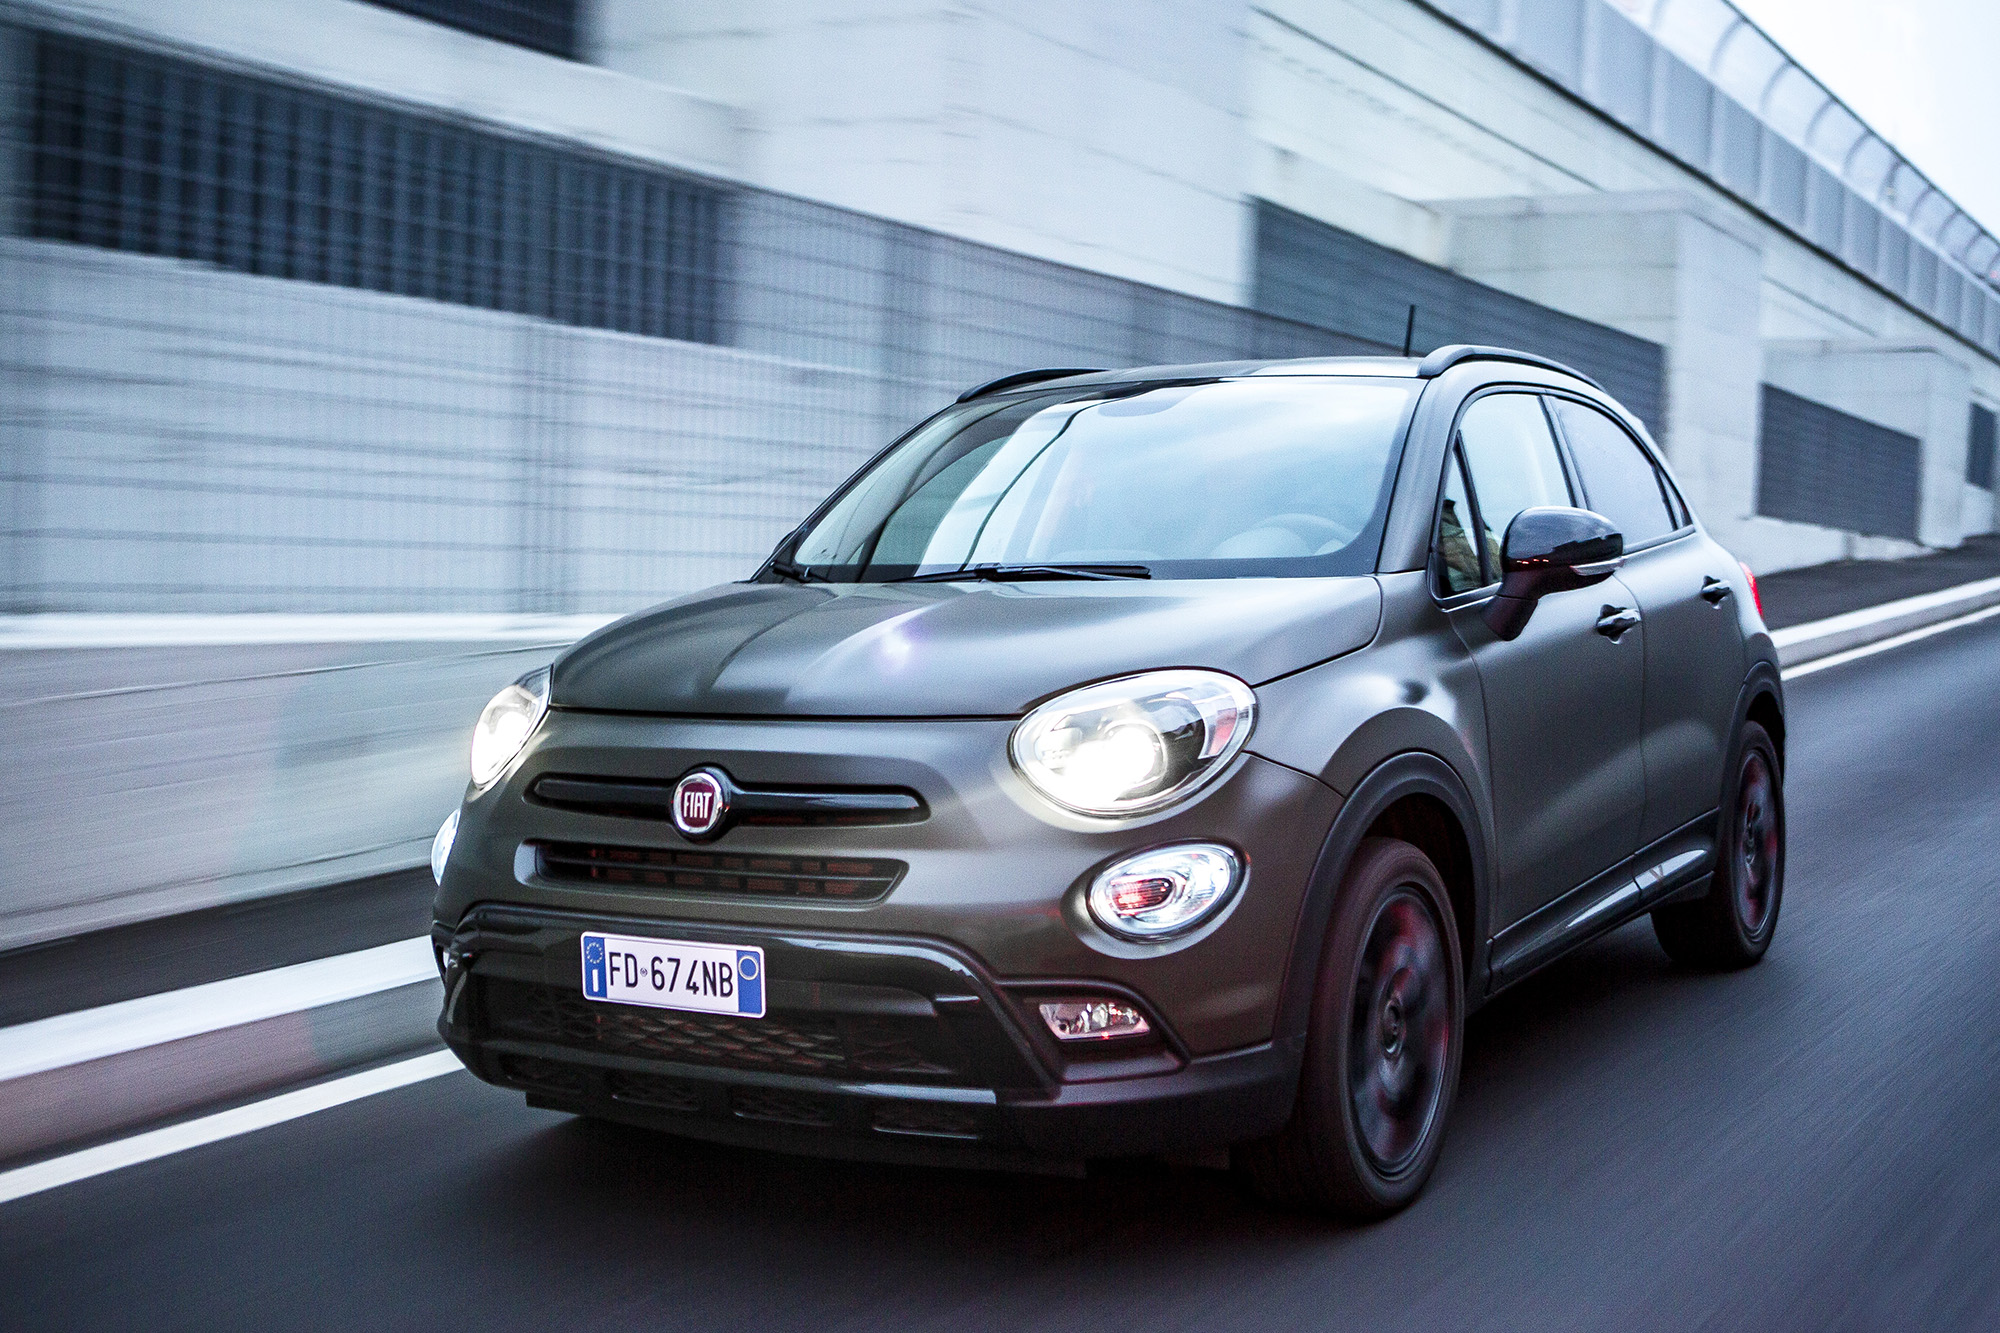 fiat 500x s design edizione speciale a prezzo speciale euro qn motori. Black Bedroom Furniture Sets. Home Design Ideas